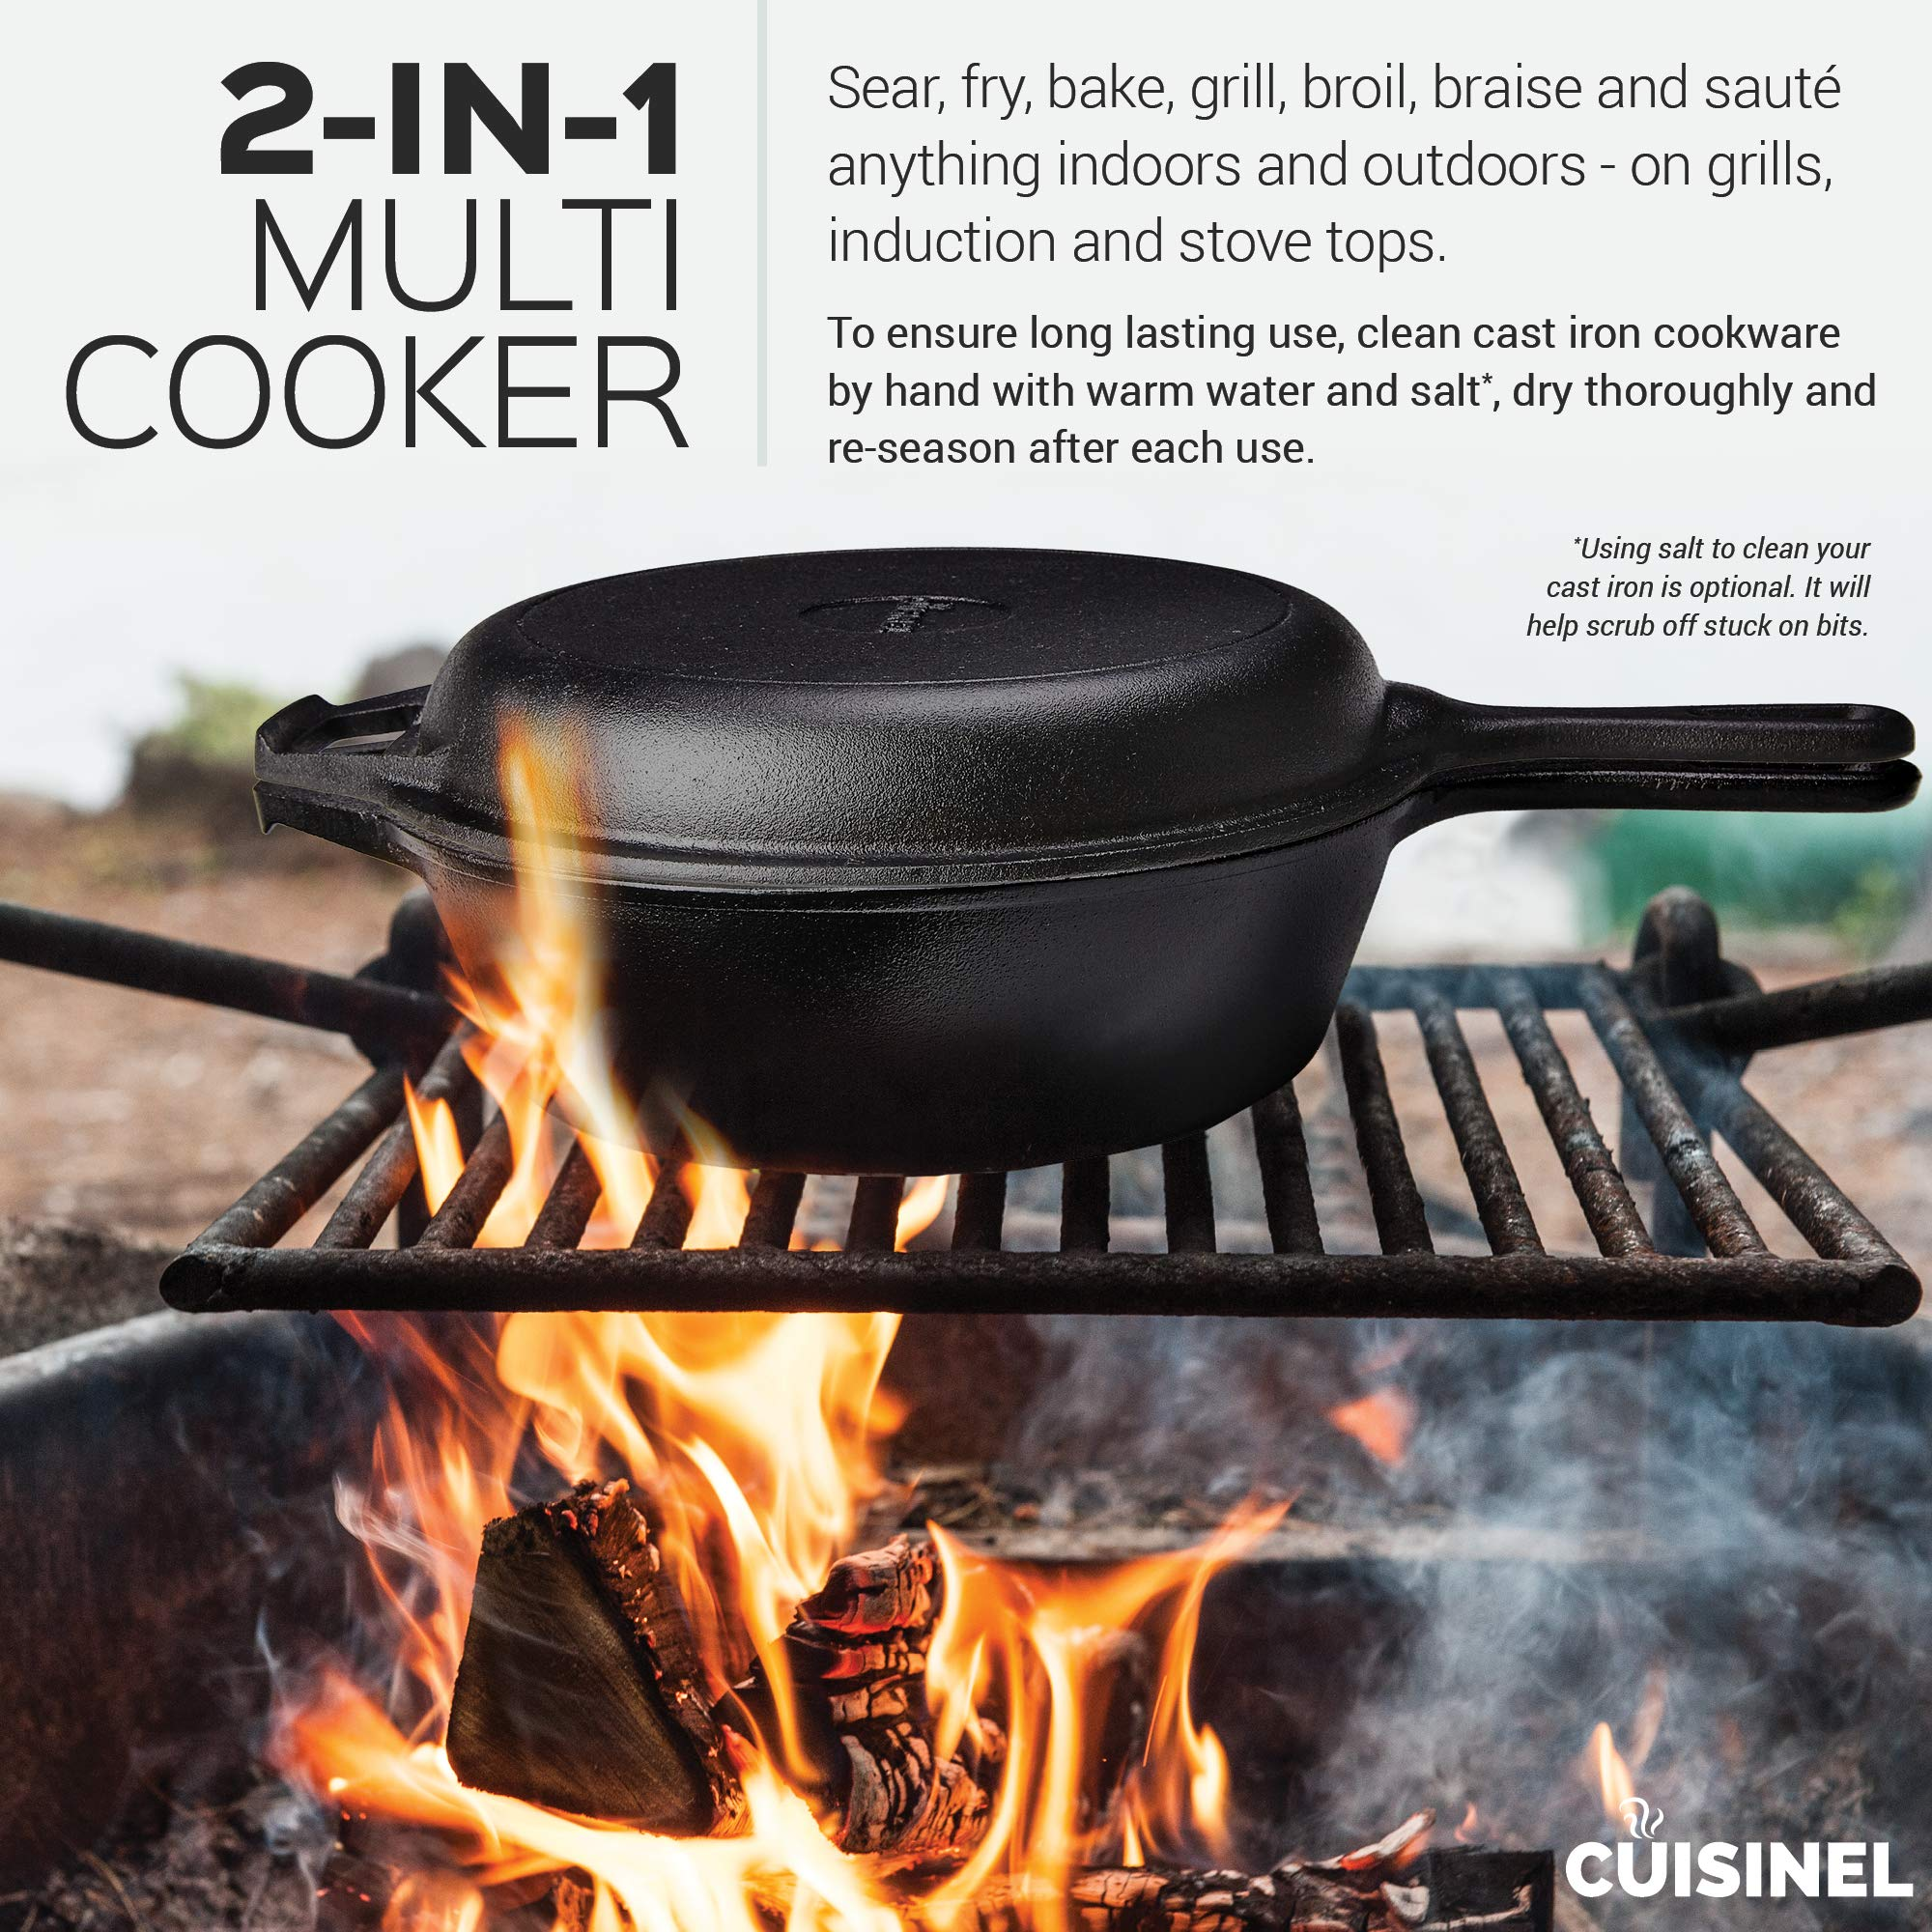 Pre-Seasoned Cast Iron 2-In-1 Multi Cooker | 3-Quart Dutch Oven and Skillet Lid Set Oven Safe Cookware | Use As Dutch Oven and Frying Pan | Indoor and Outdoor Use | Grill, Stovetop, Induction Safe by cuisinel (Image #5)